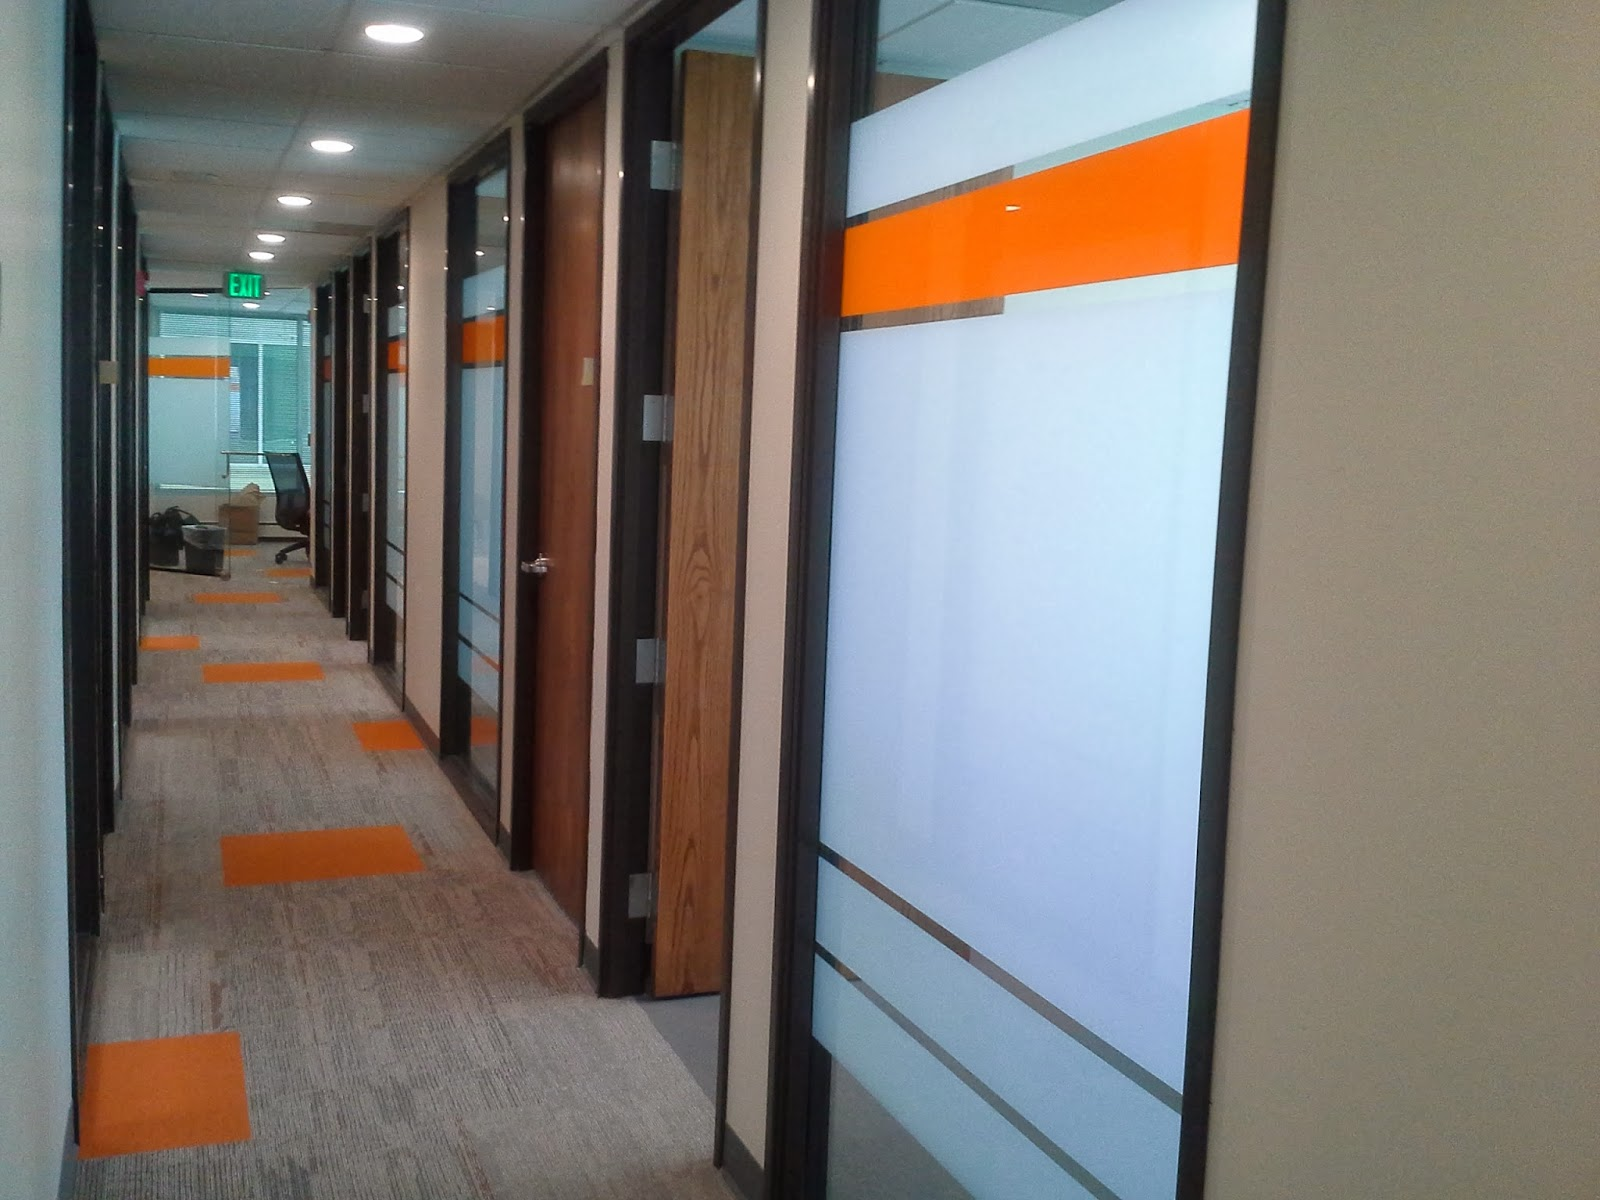 commercial windows tinting film | Clear View Window Films: Commercial Window Tinting Films ...